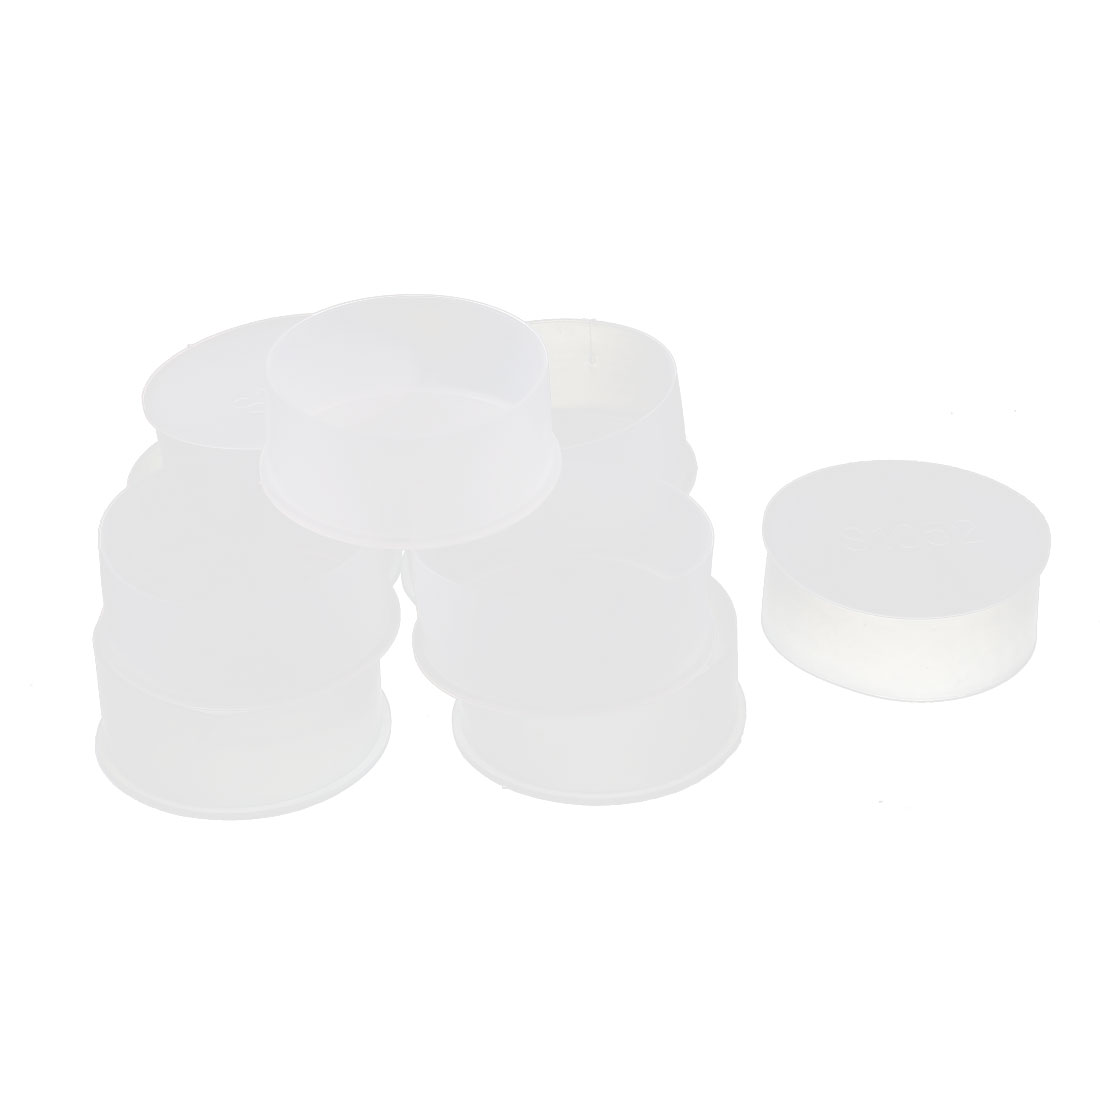 10Pcs 52mm Inner Dia PVC Insulated End Cap Wire Cable Tube Cover Protector